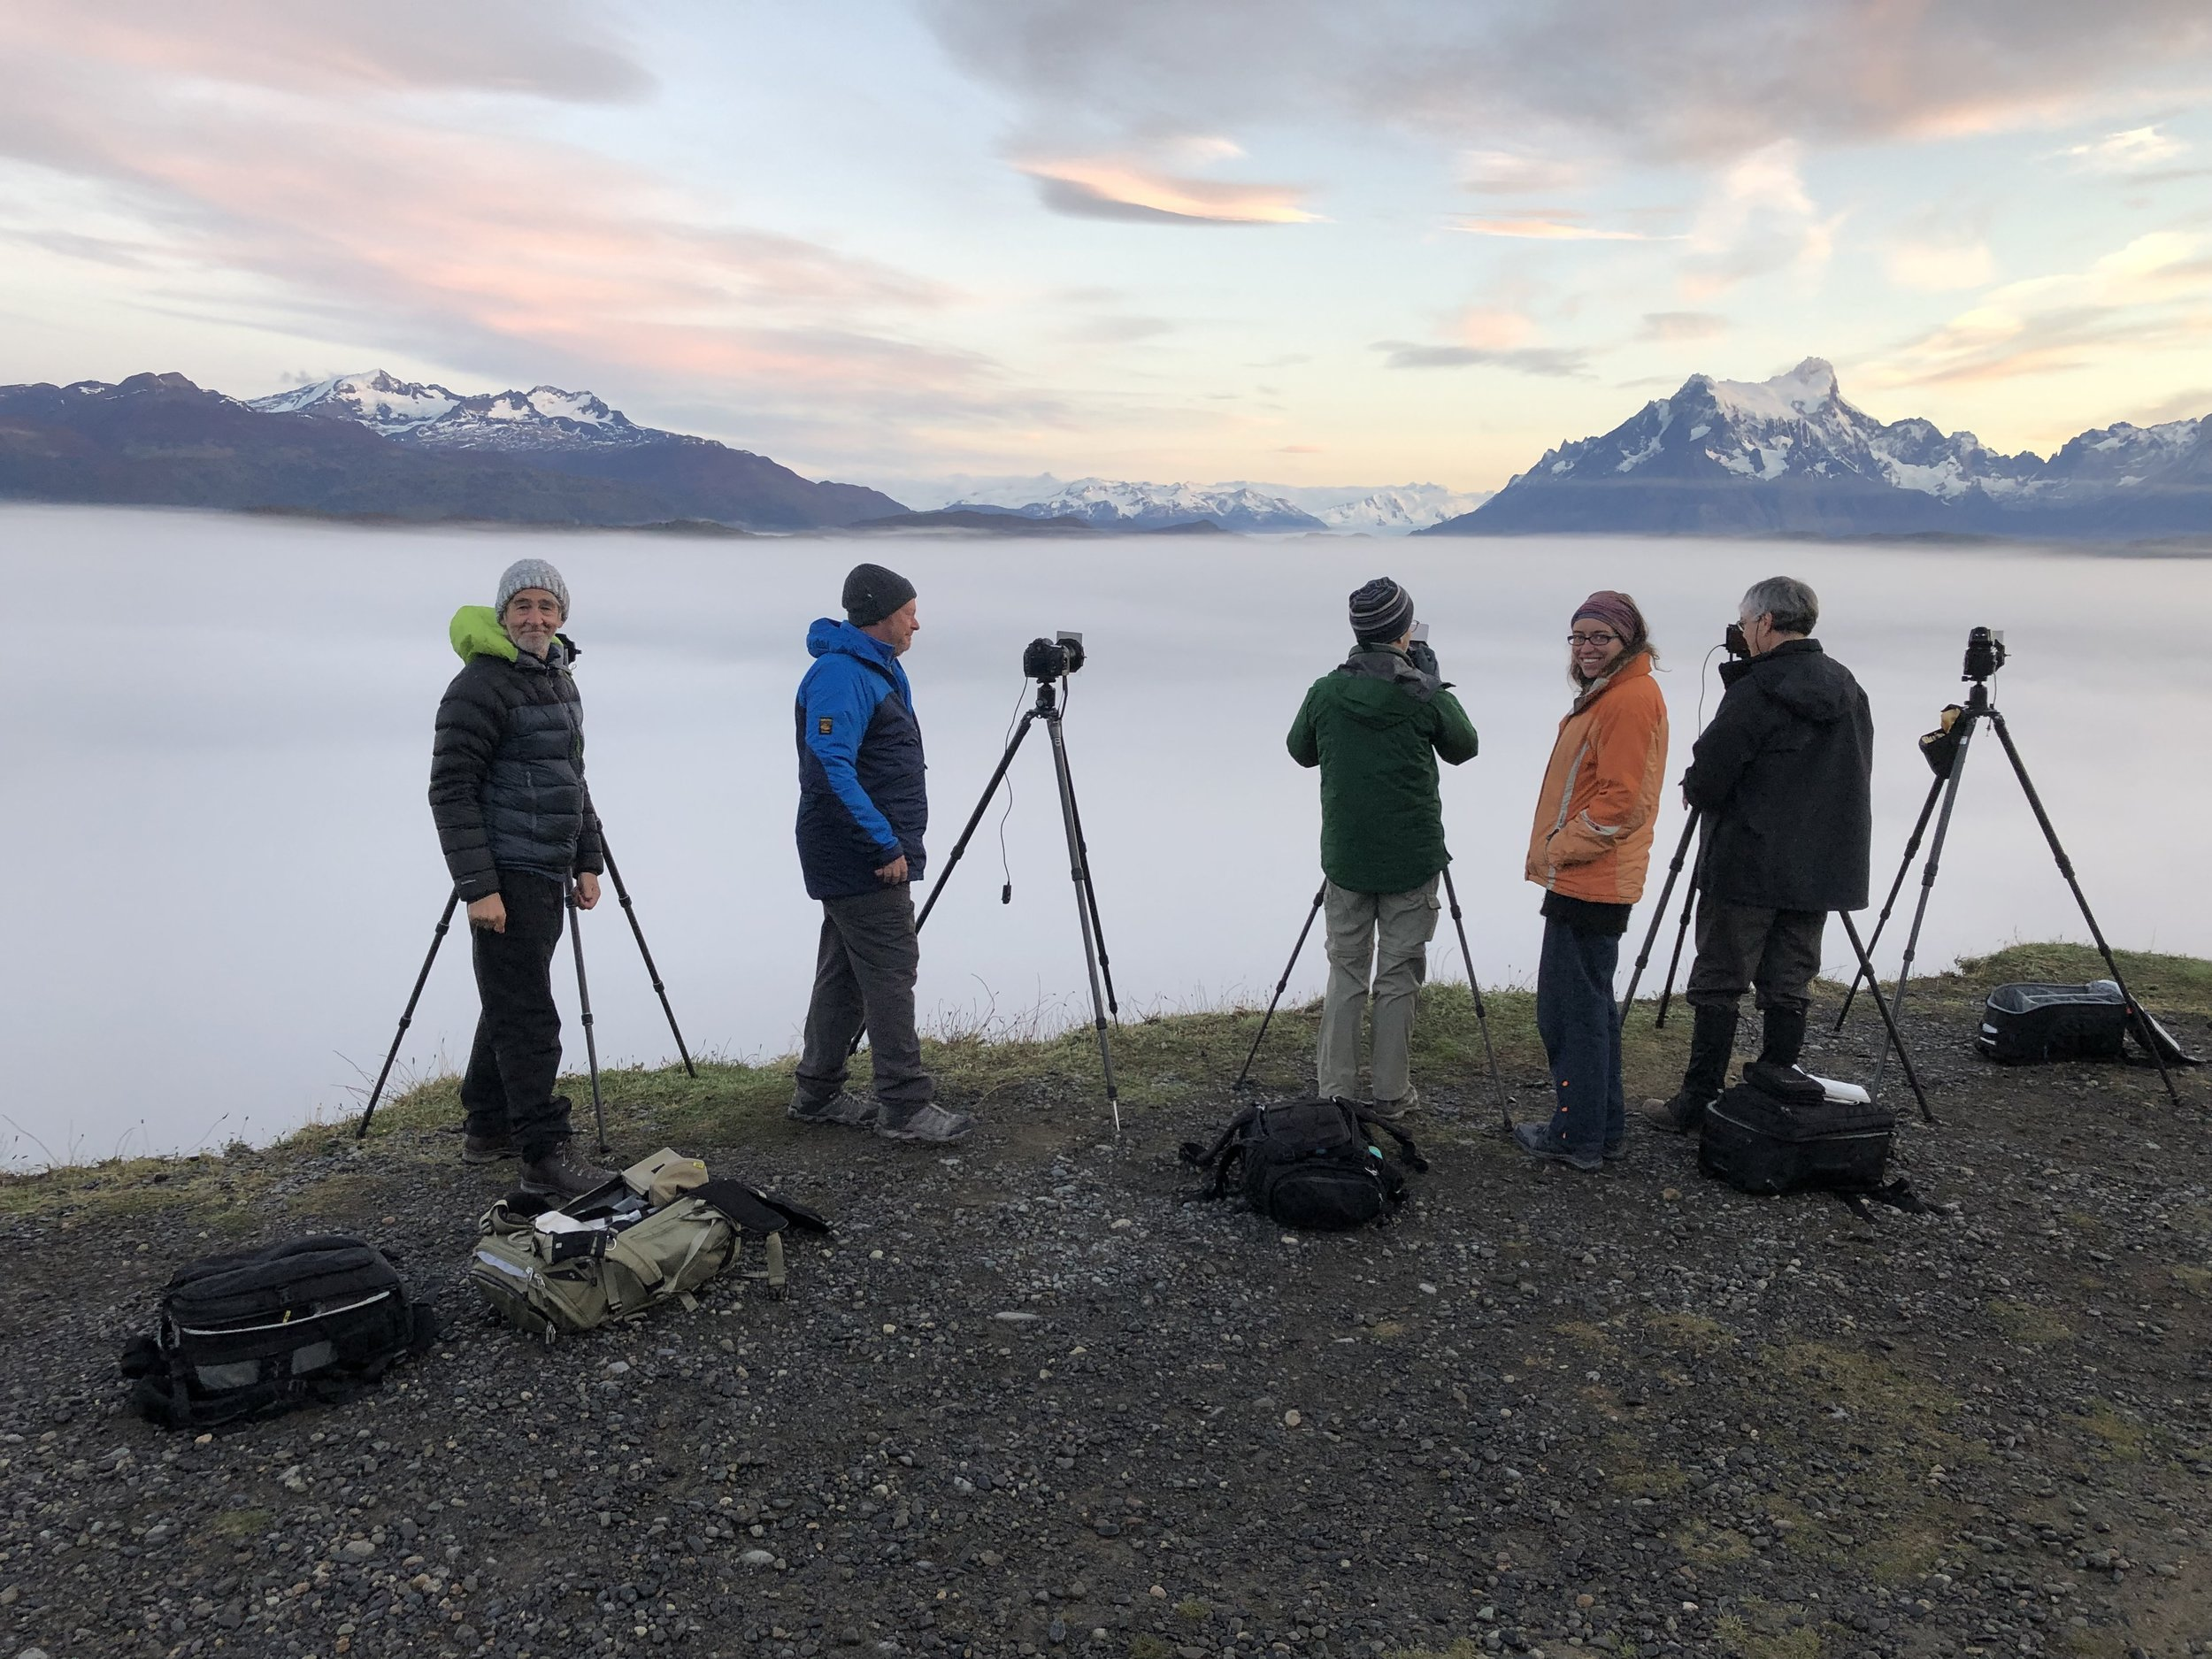 My guide Sabine and some of the group participants from this year's Patagonia tour.